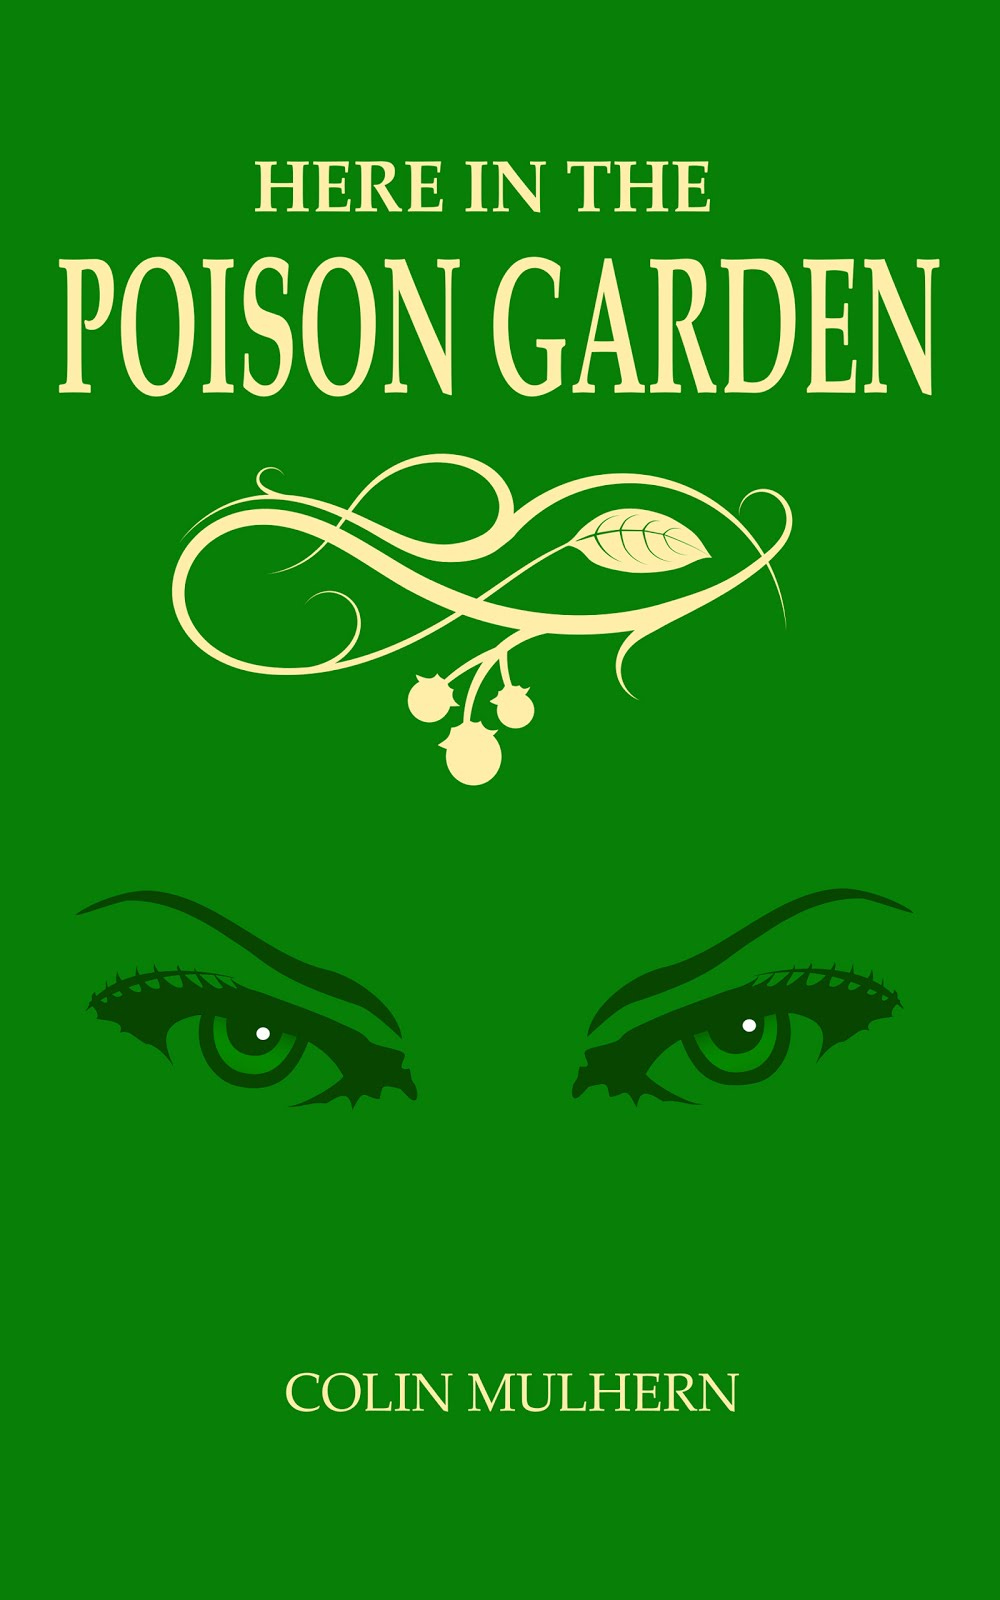 Here in the Poison Garden